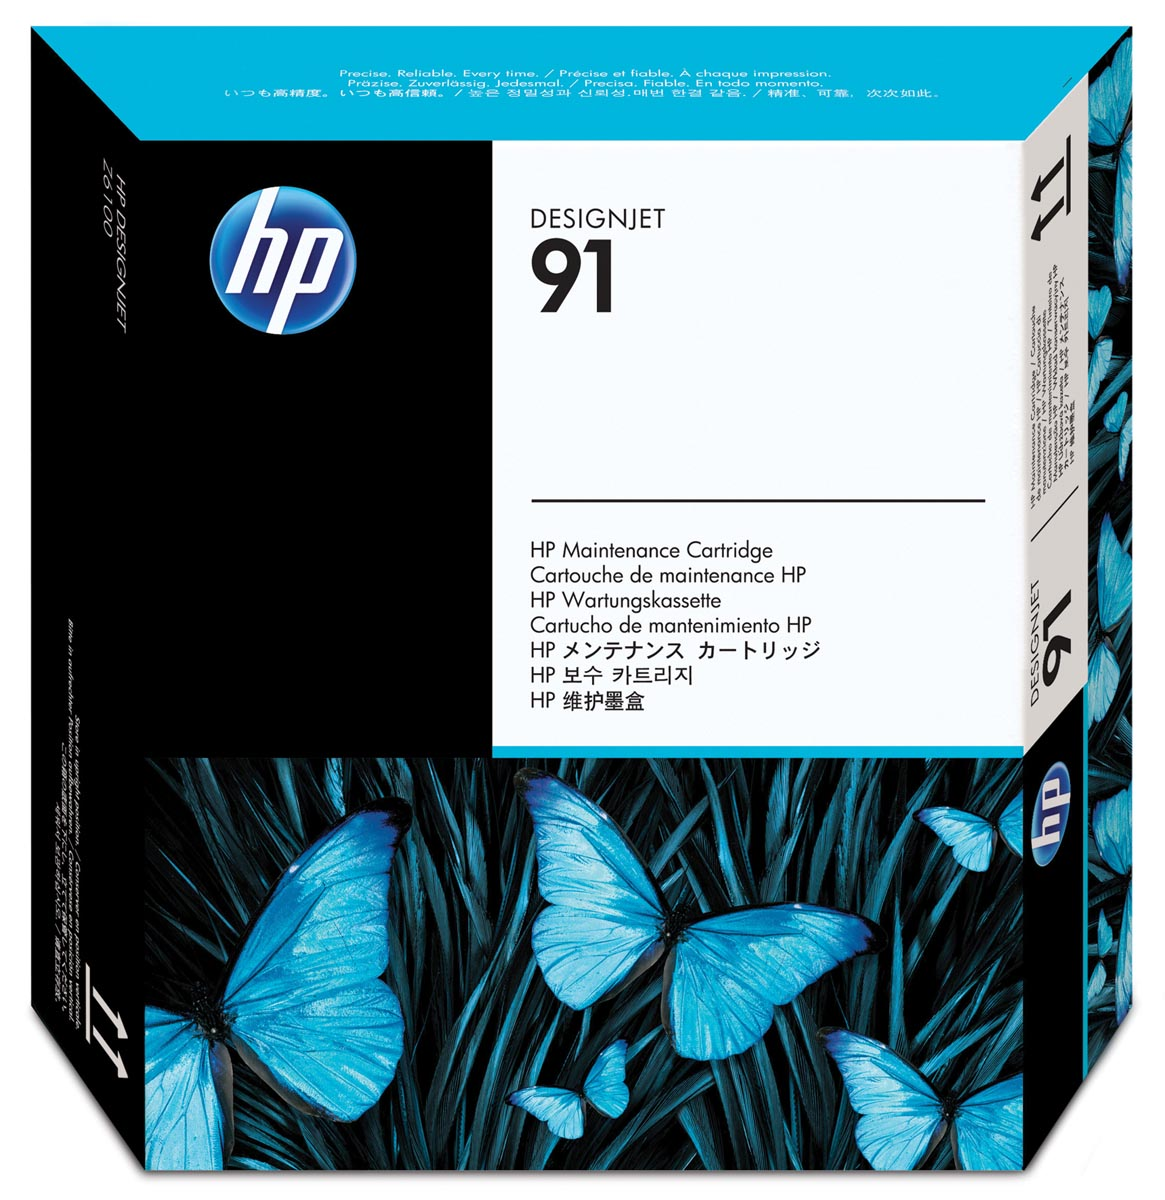 HP onderhoudscartridge 91, OEM C9518A